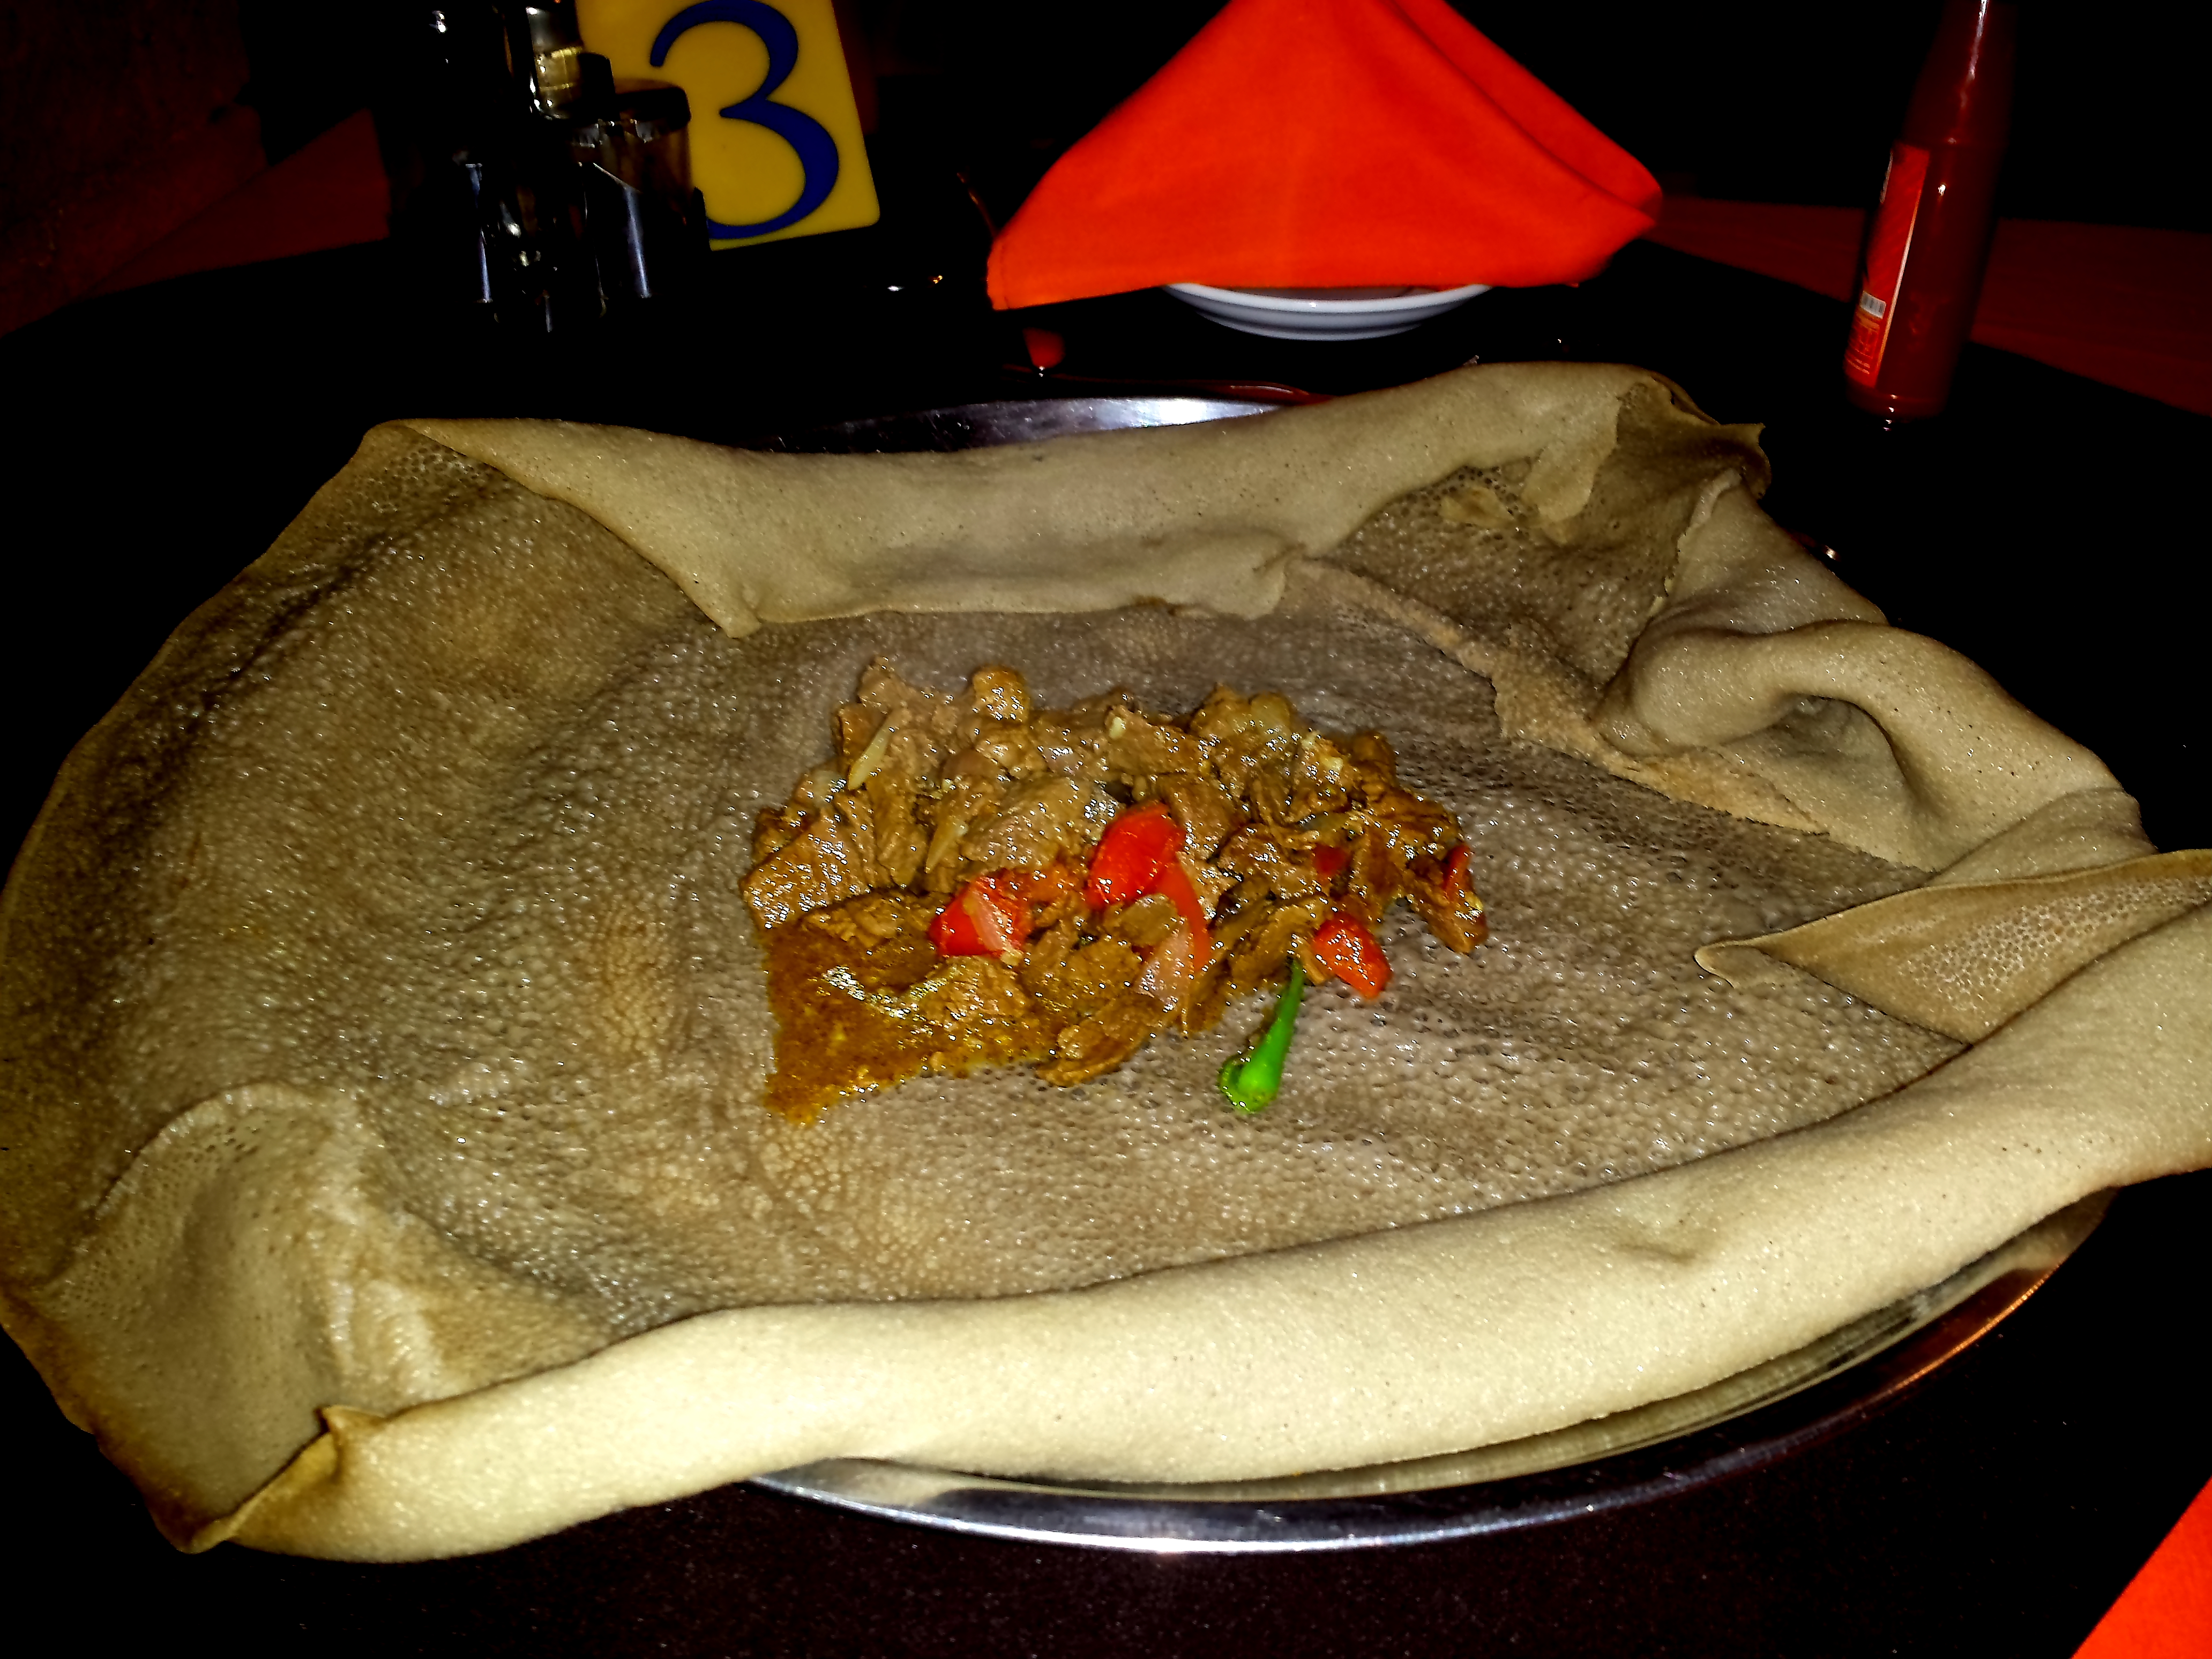 ... Beef Tibs and Injera – it was delivered promptly within 15 minutes